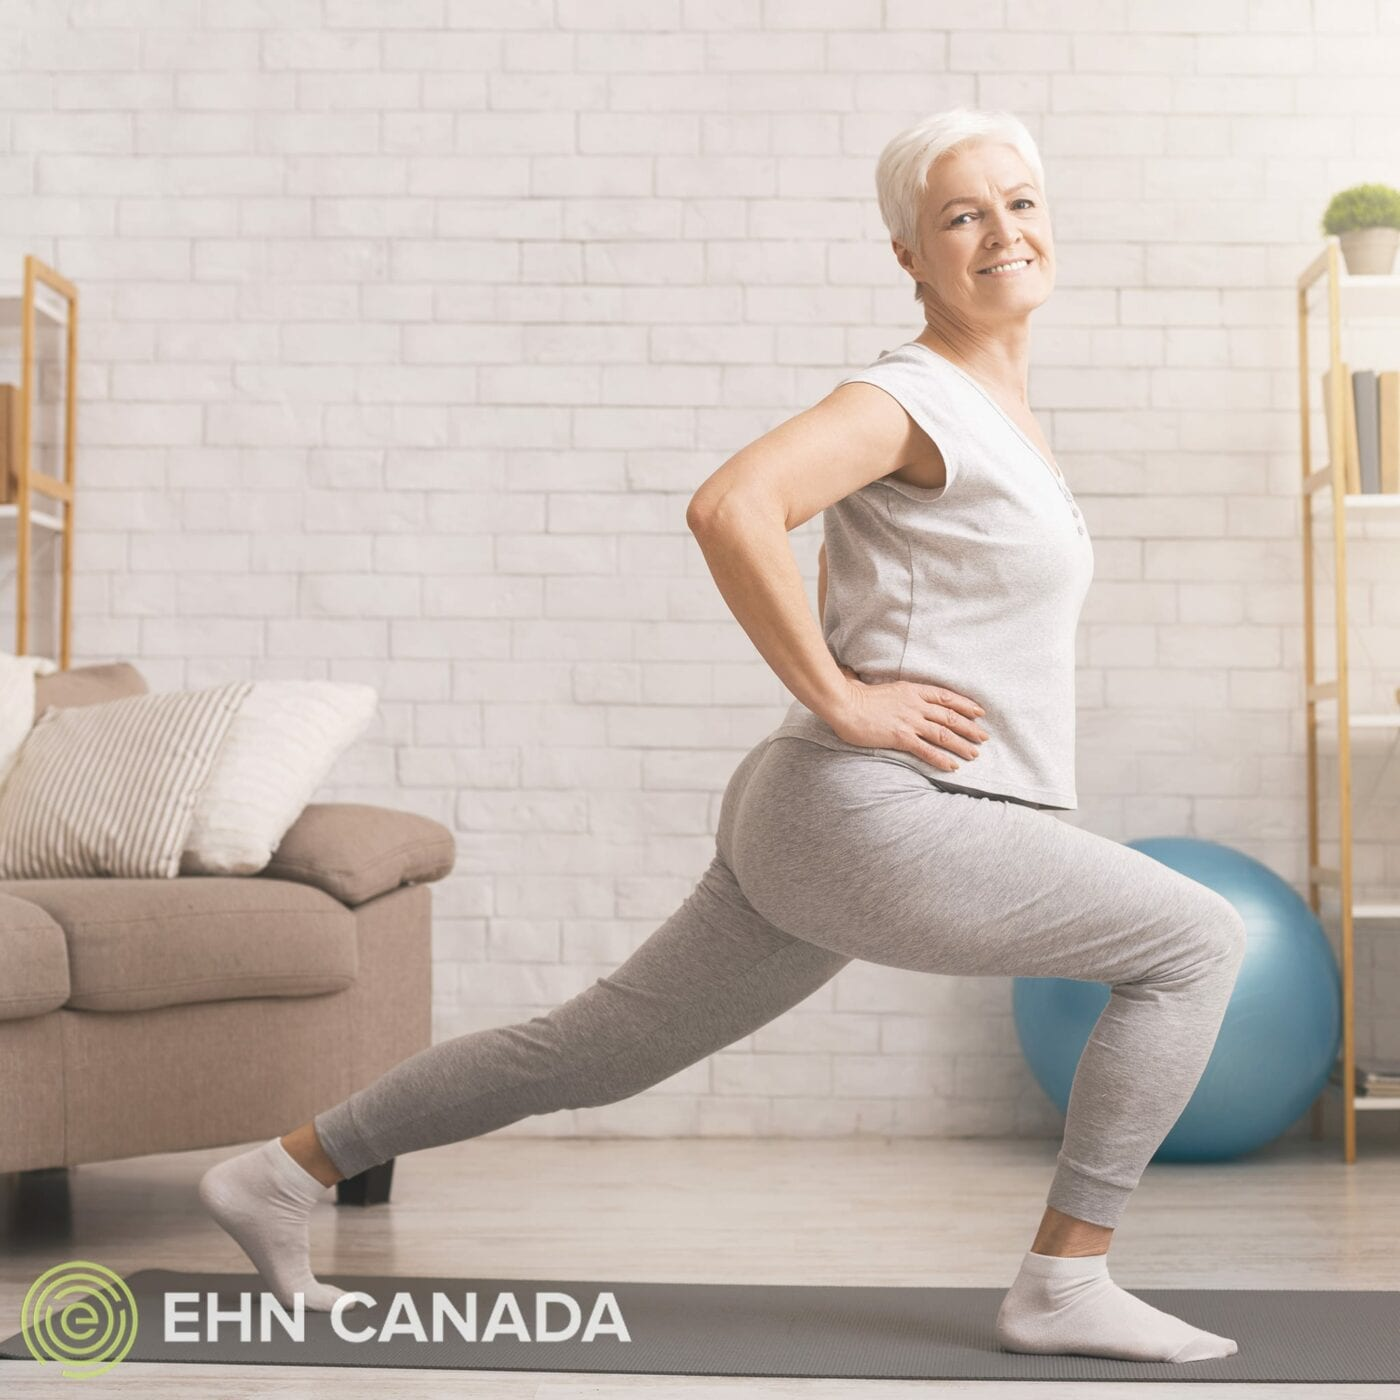 7 Exercises for a Great Home Workout During Self-Isolation